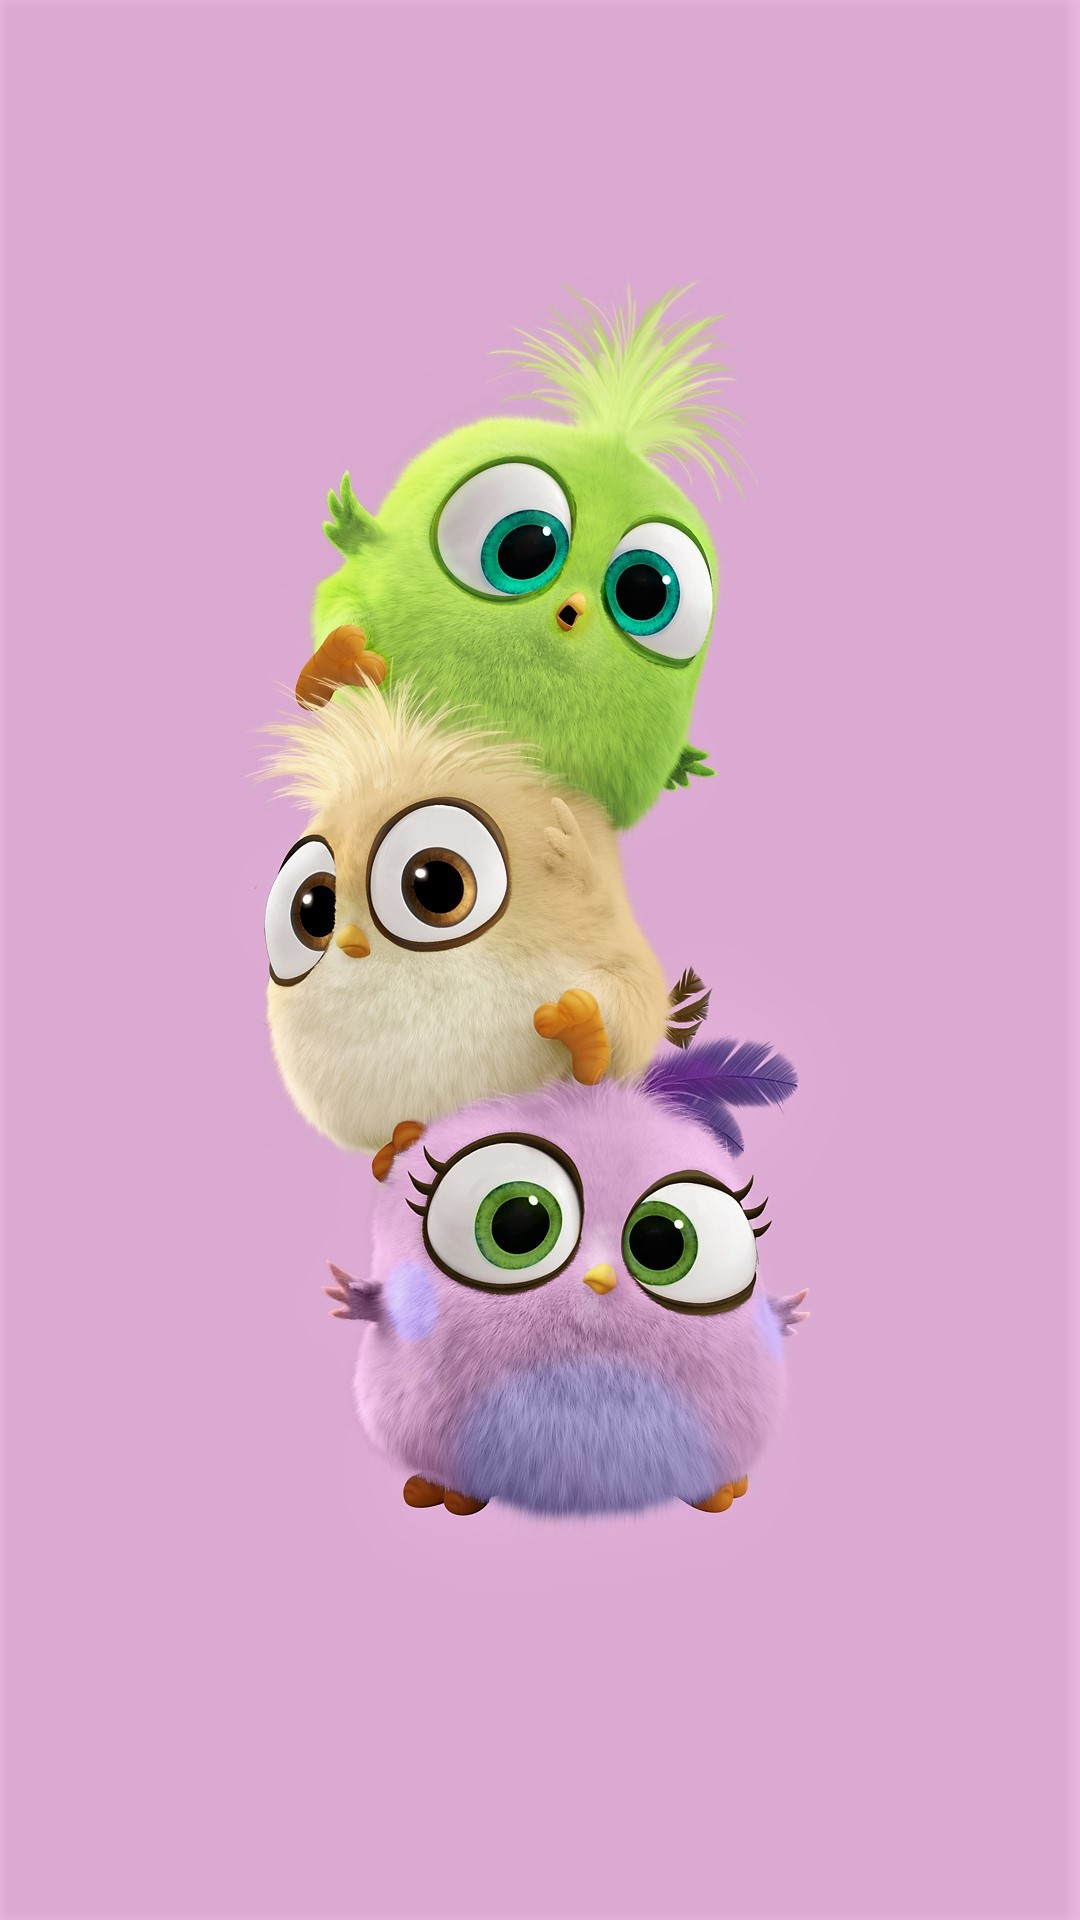 Baby Birds – Tap to see more cute cartoon wallpapers! – @mobile9